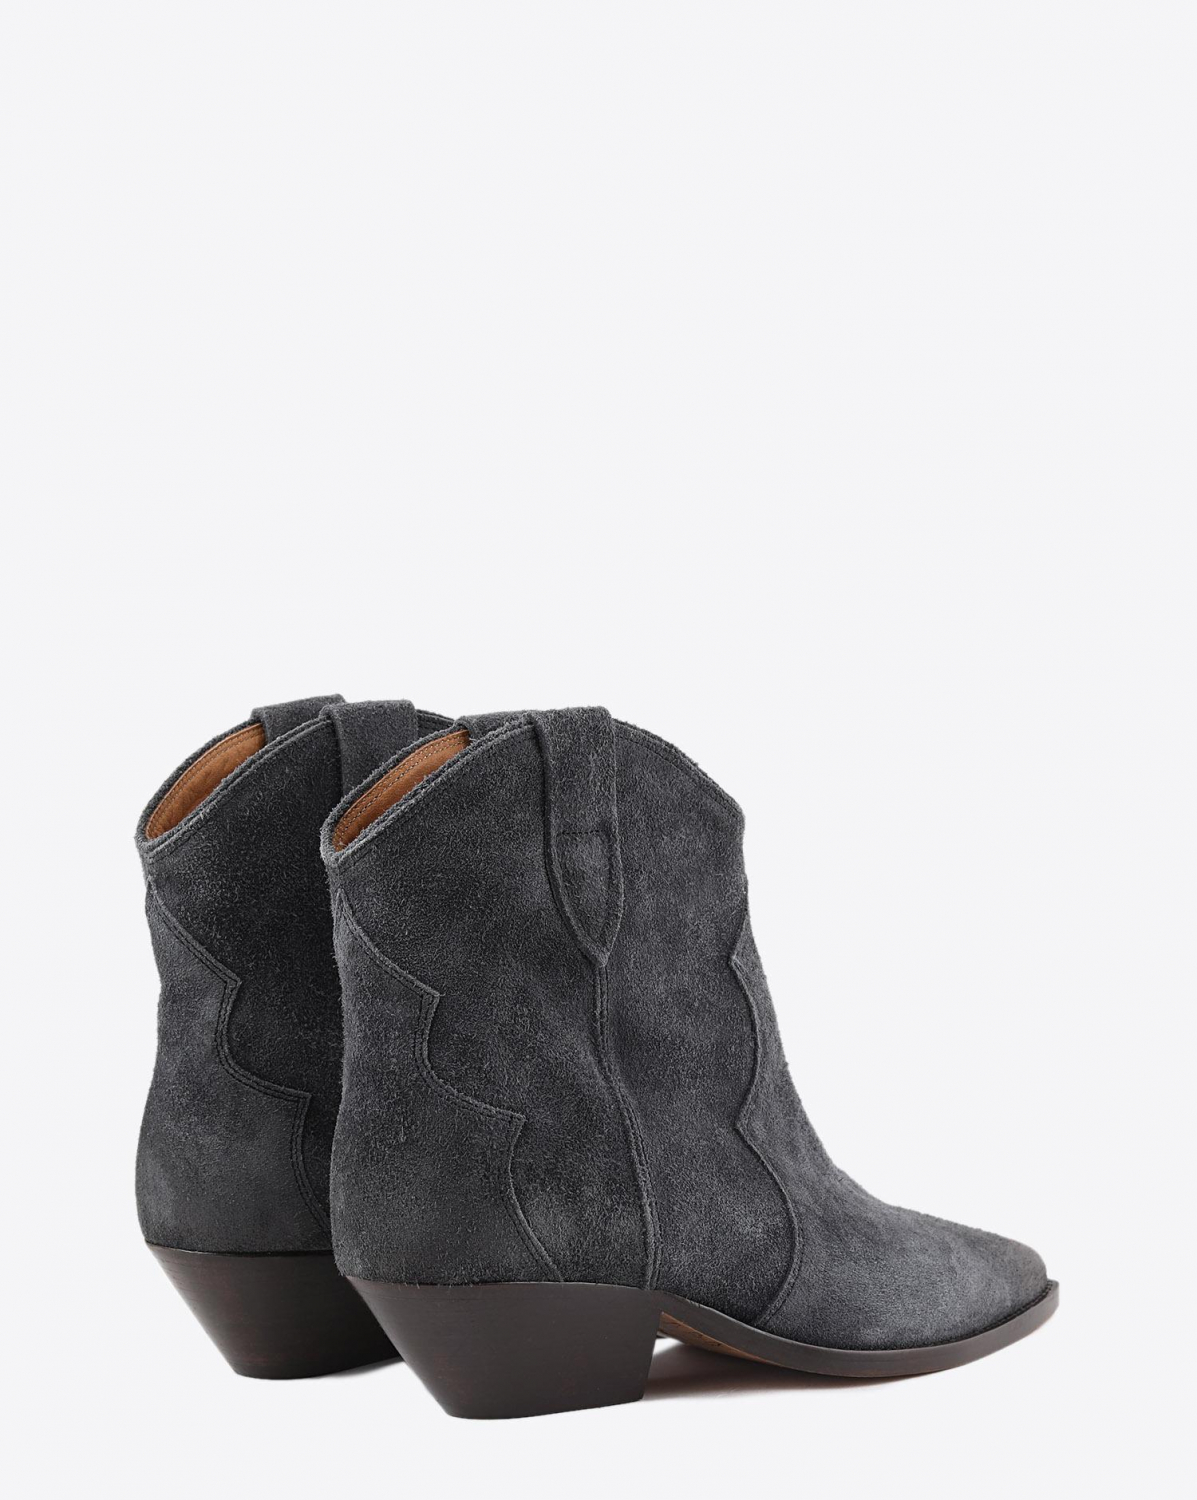 Isabel Marant Chaussures Boots DEWINA - Faded Black E20